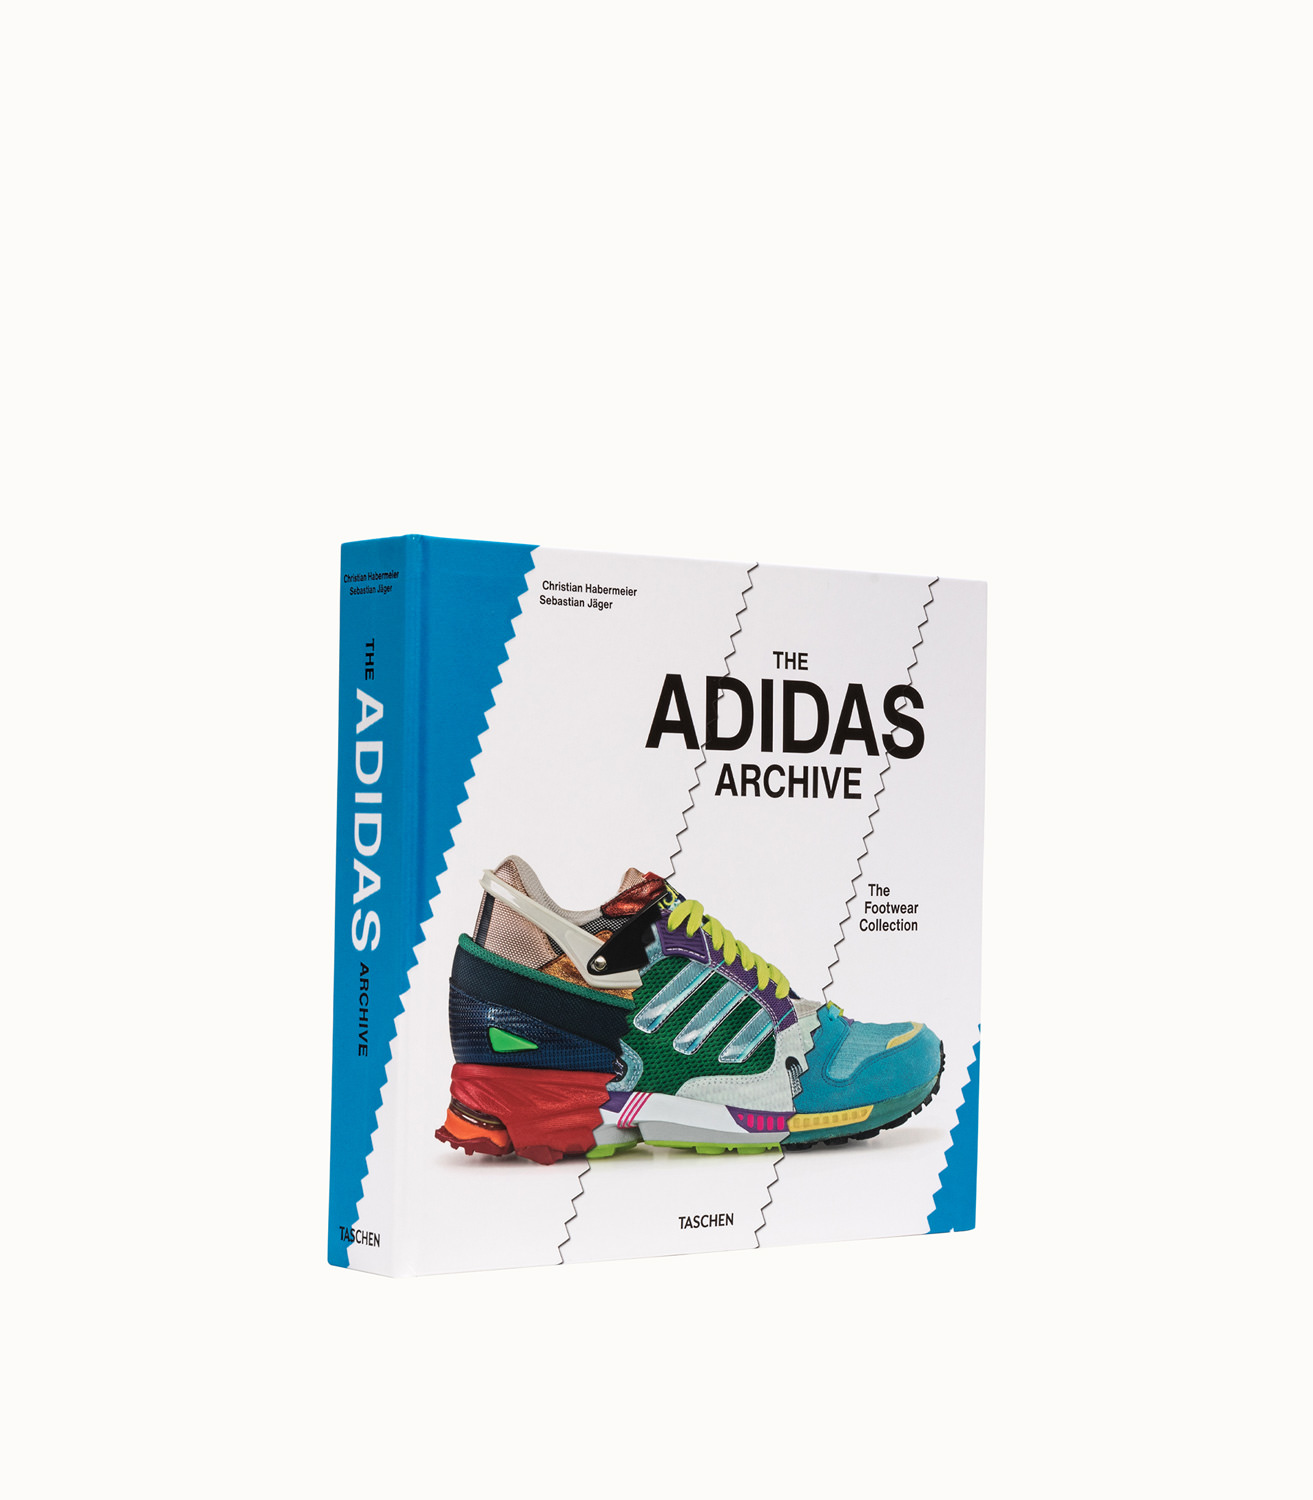 THE ADIDAS ARCHIVE BOOK